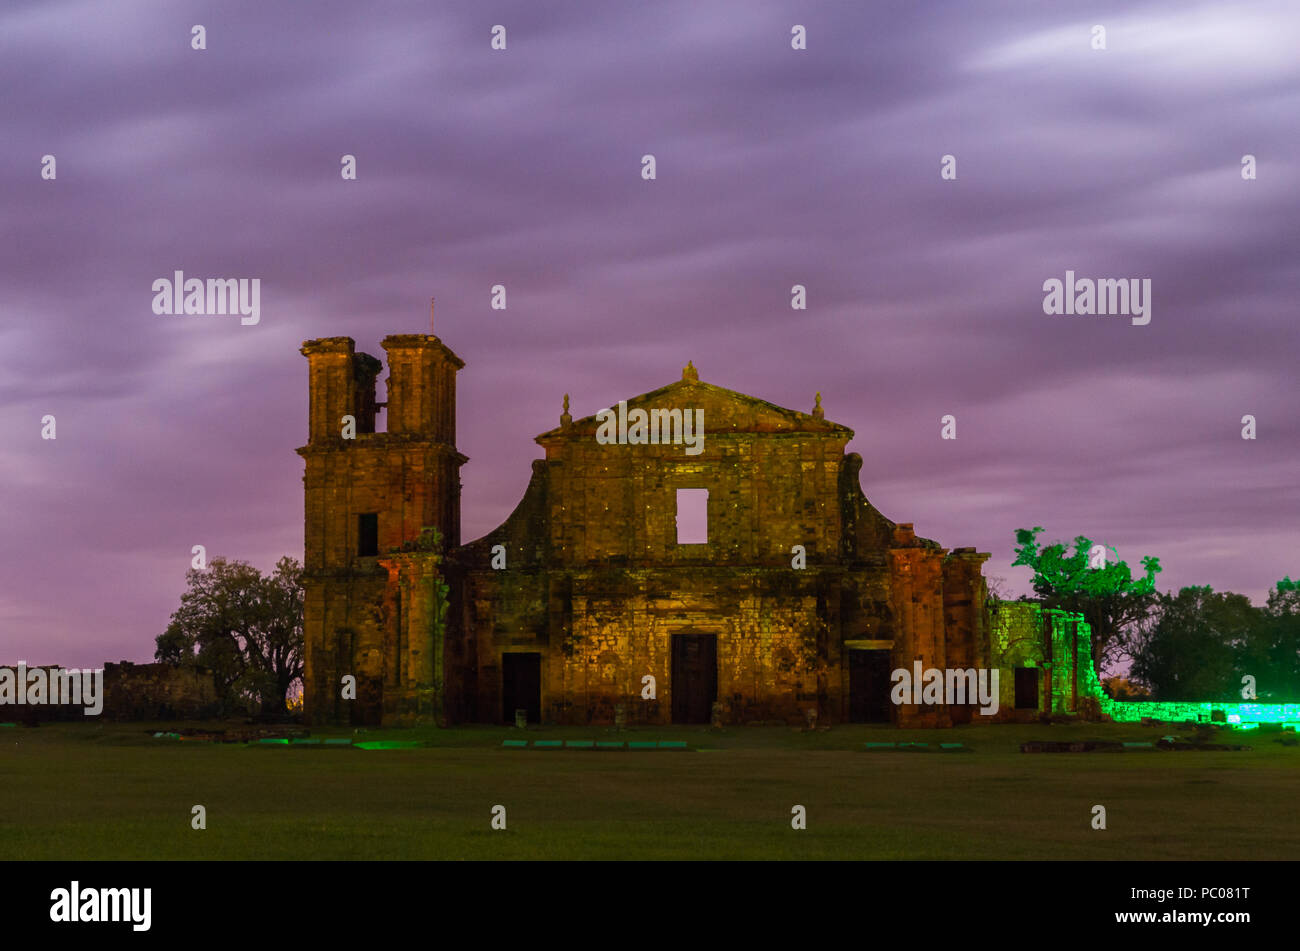 Part of the UNESCO site - Jesuit Missions of the Guaranis: Church, Ruins of Sao Miguel das Missoe, Rio Grande do Sul, Brazil. - Stock Image